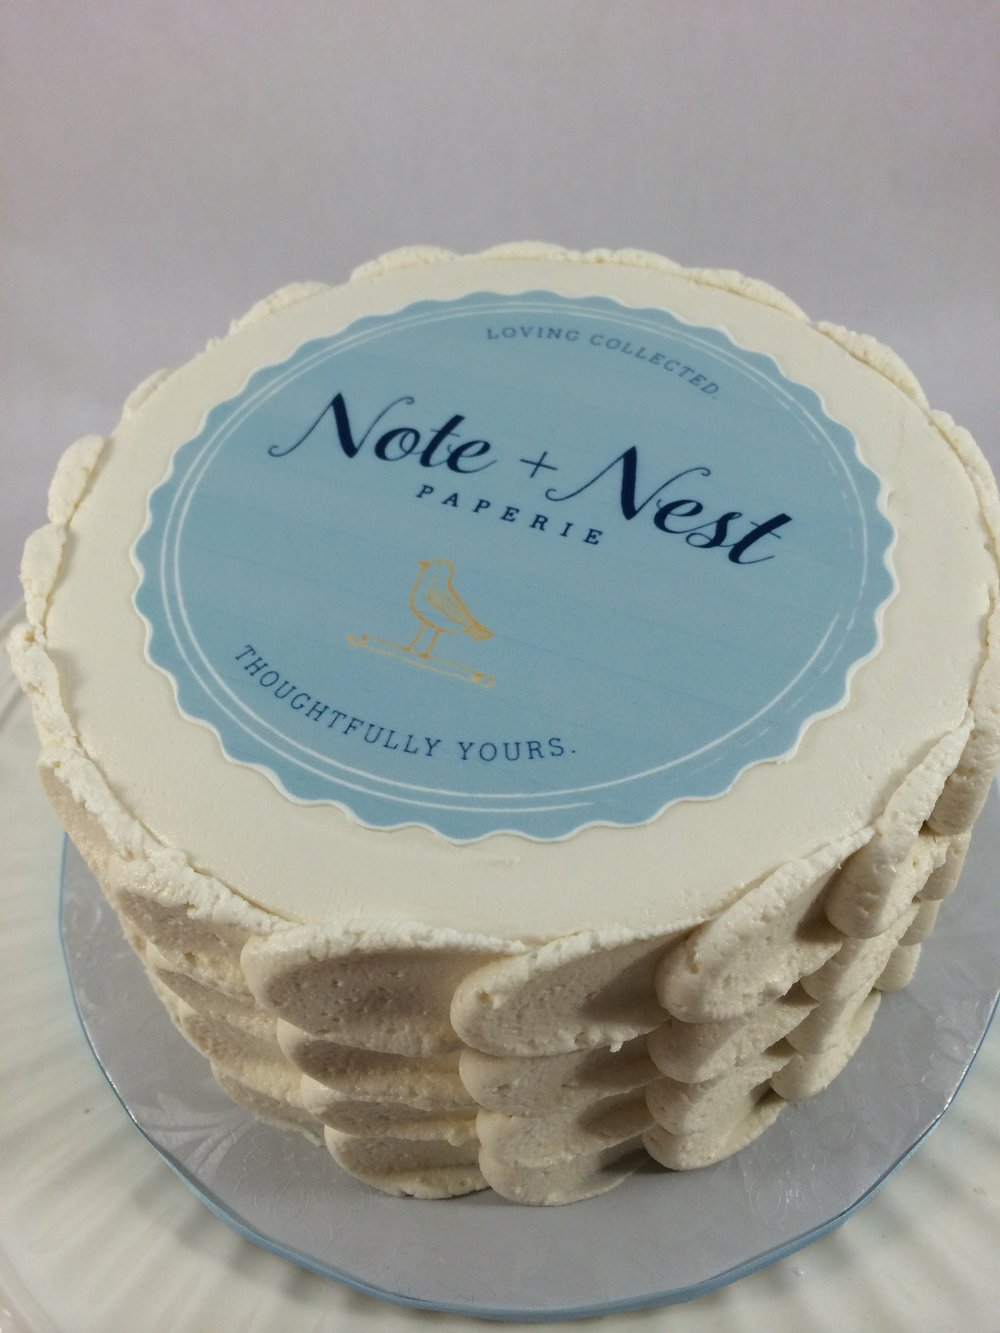 Cake note and nest.JPG